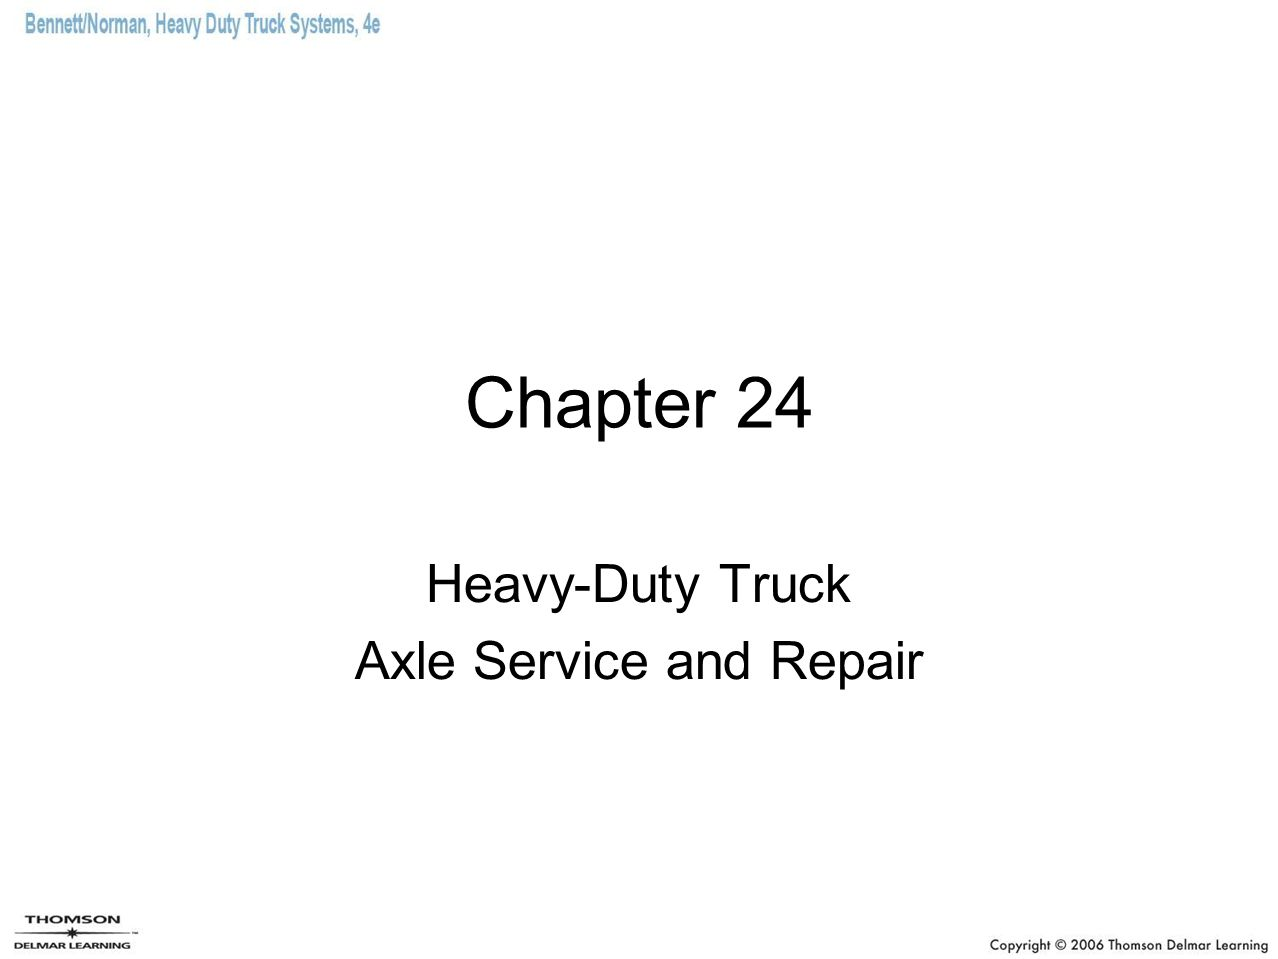 Chapter 24 Heavy-Duty Truck Axle Service and Repair